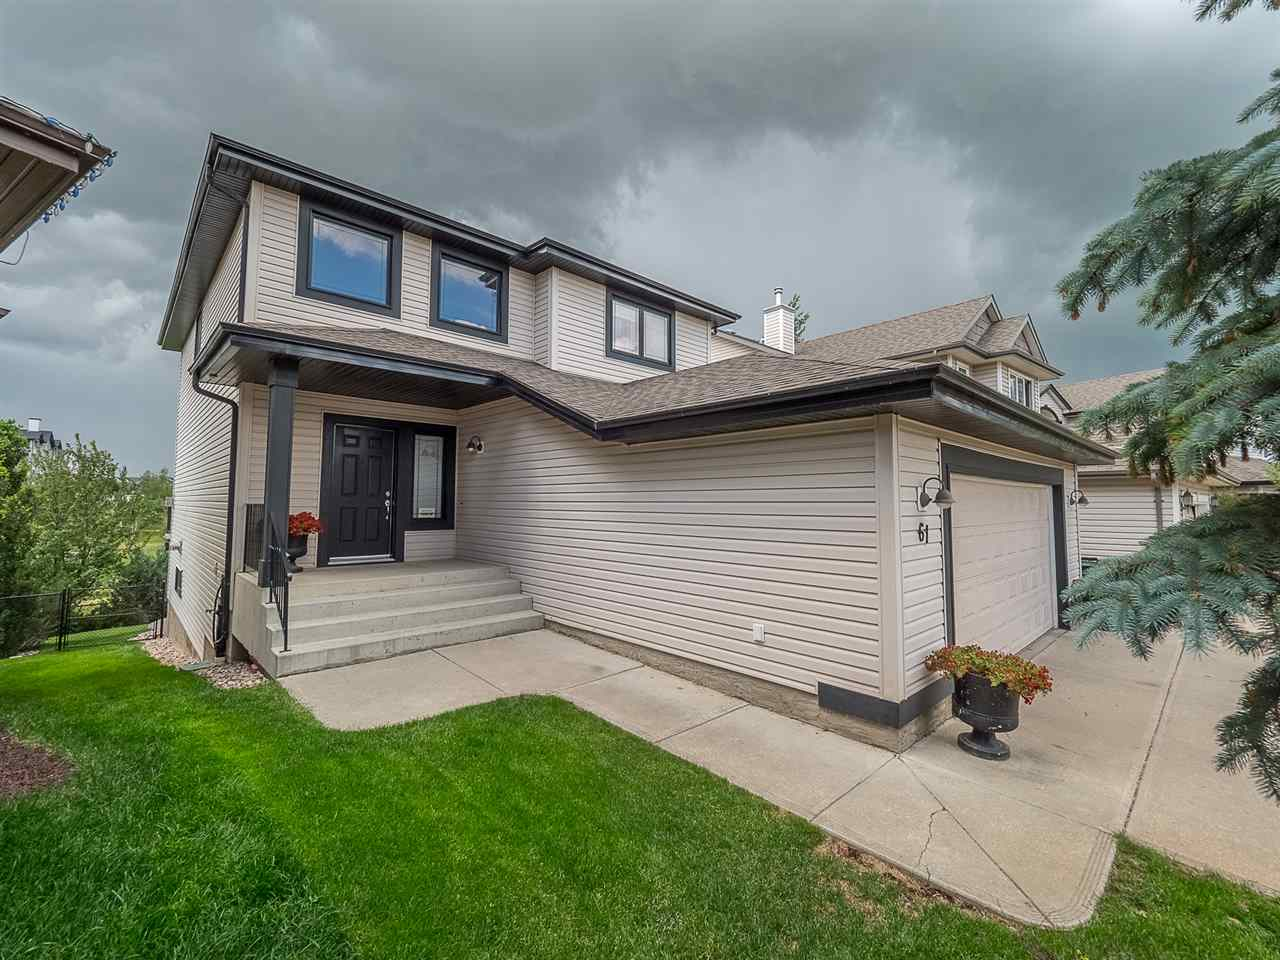 Main Photo: 61 Summercourt Place: Sherwood Park House for sale : MLS®# E4120228